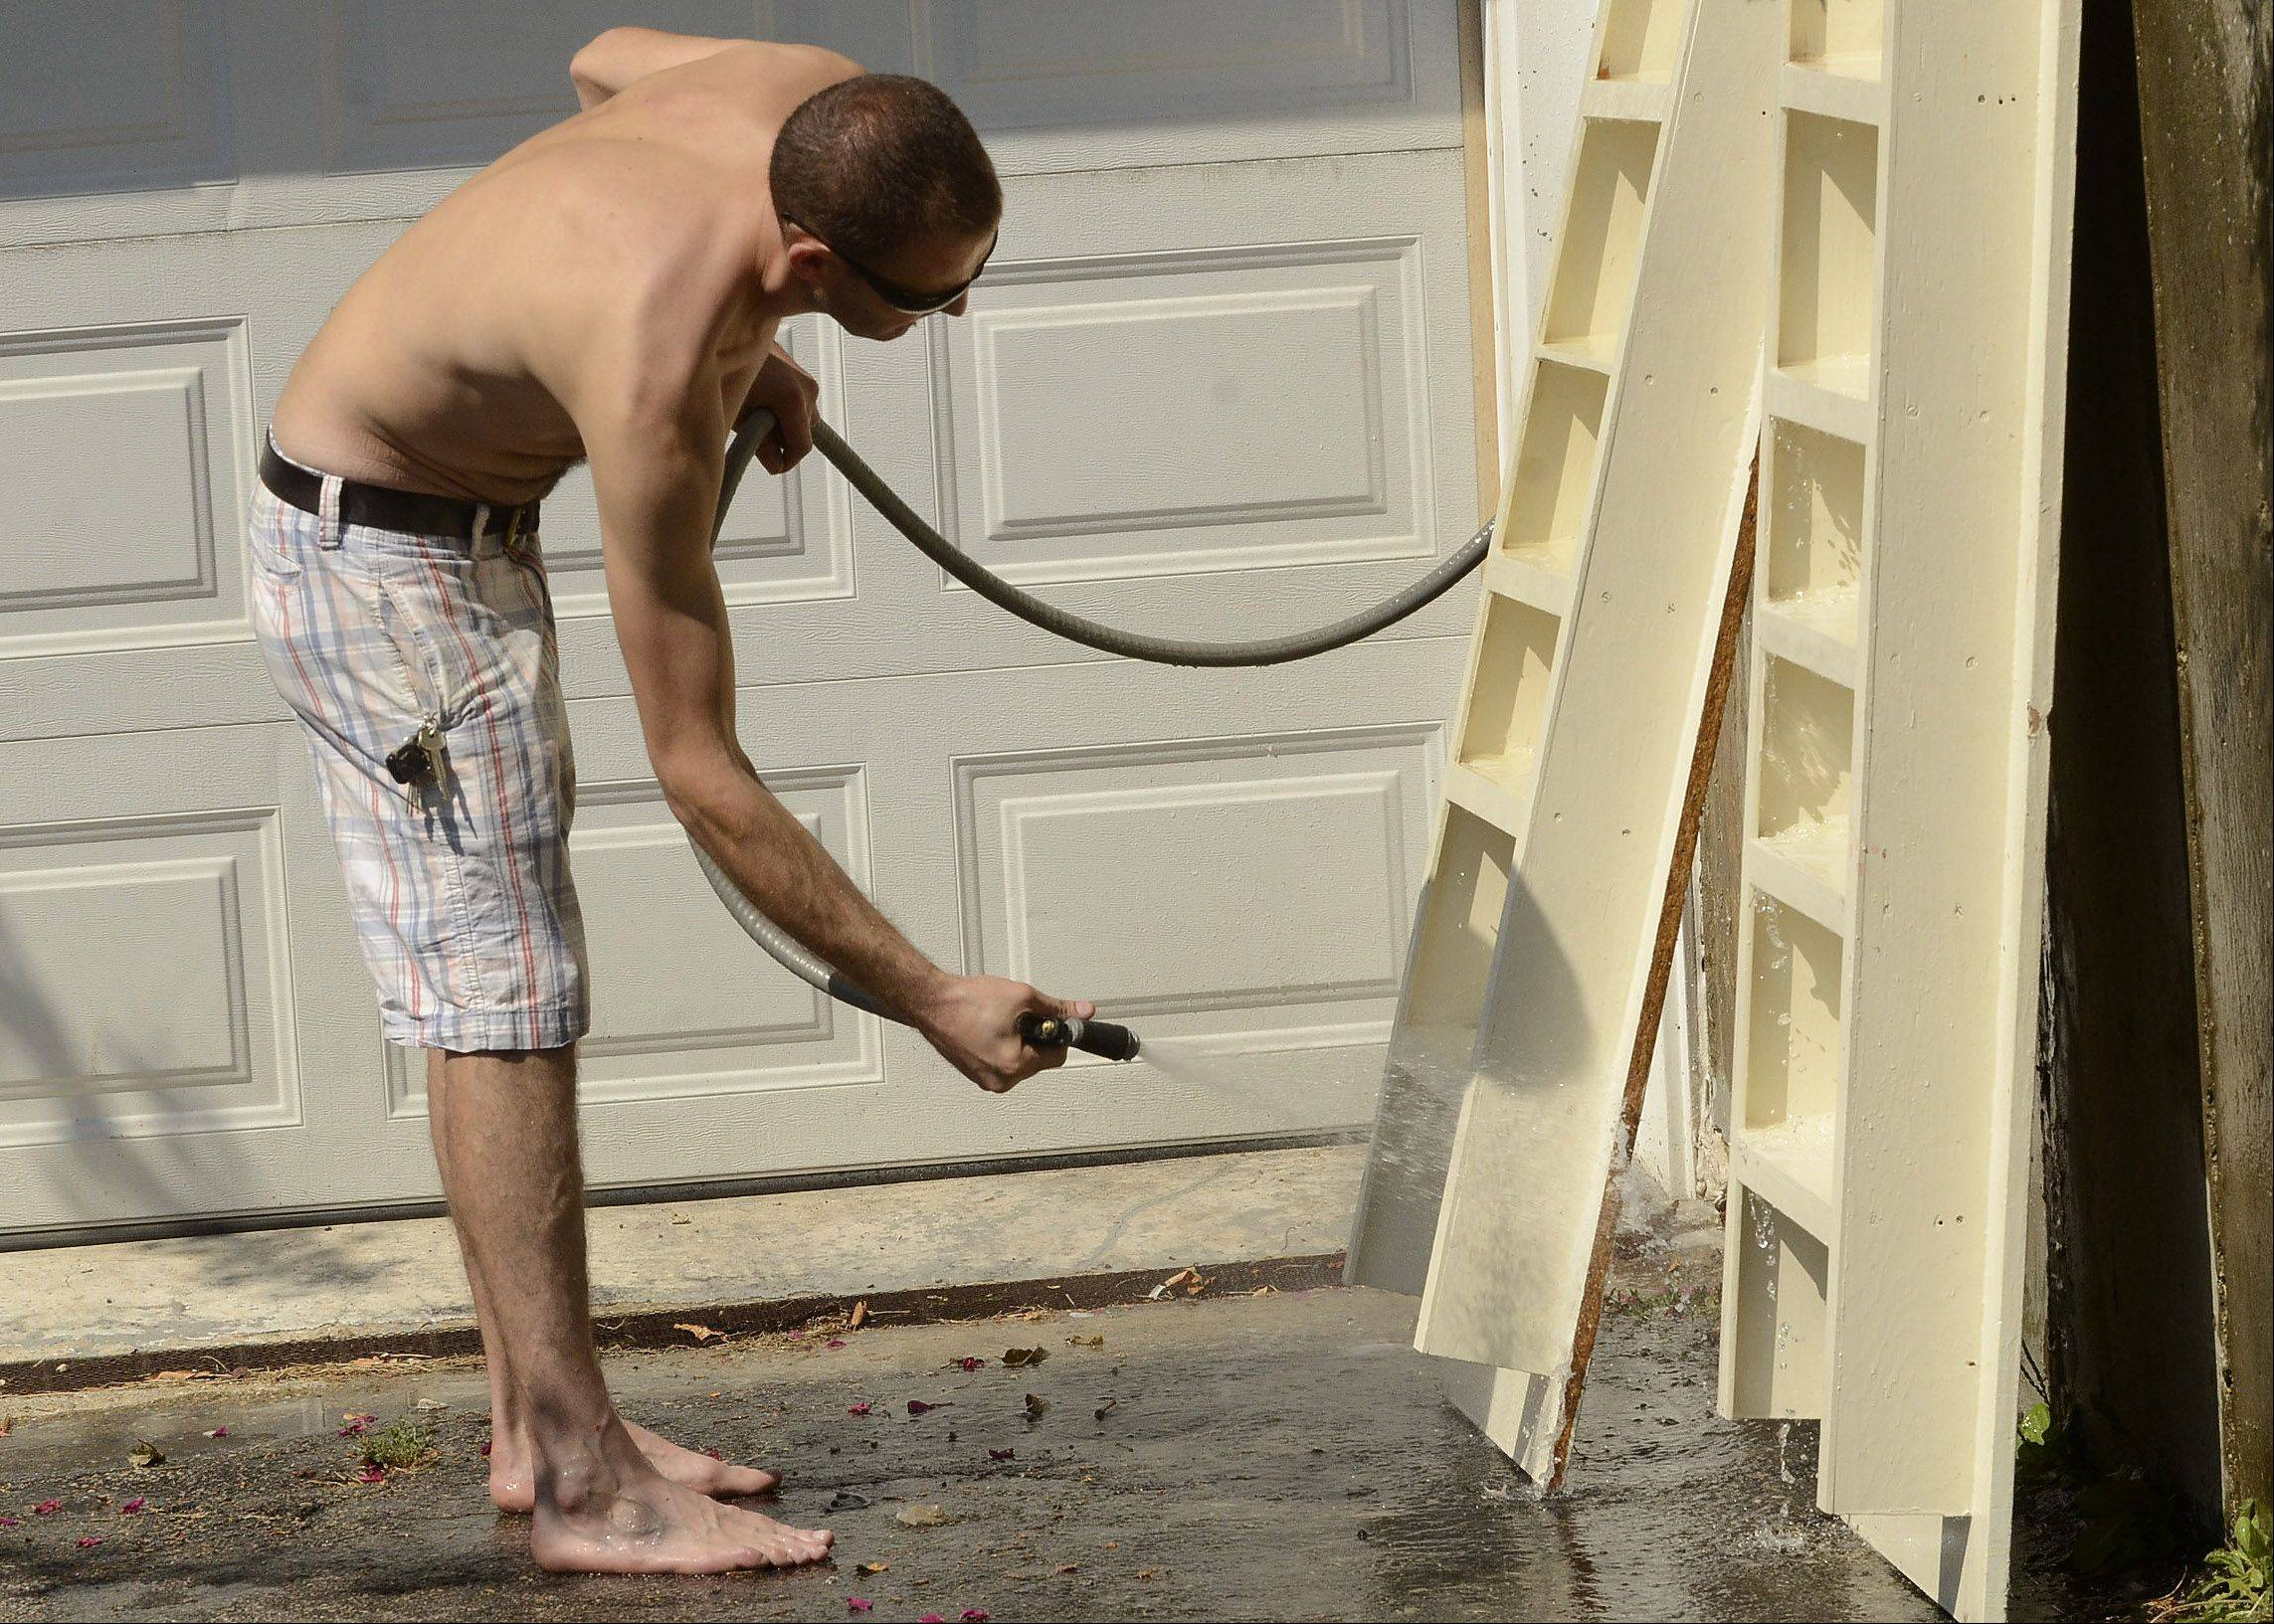 Peter Zob of Hoffman Estates stays cool while hosing down some of his garage shelves. After seeing his kids off to school, he just started this latest task and will go inside as soon as he finishes, not staying out any longer than he has to in this late summer heat.